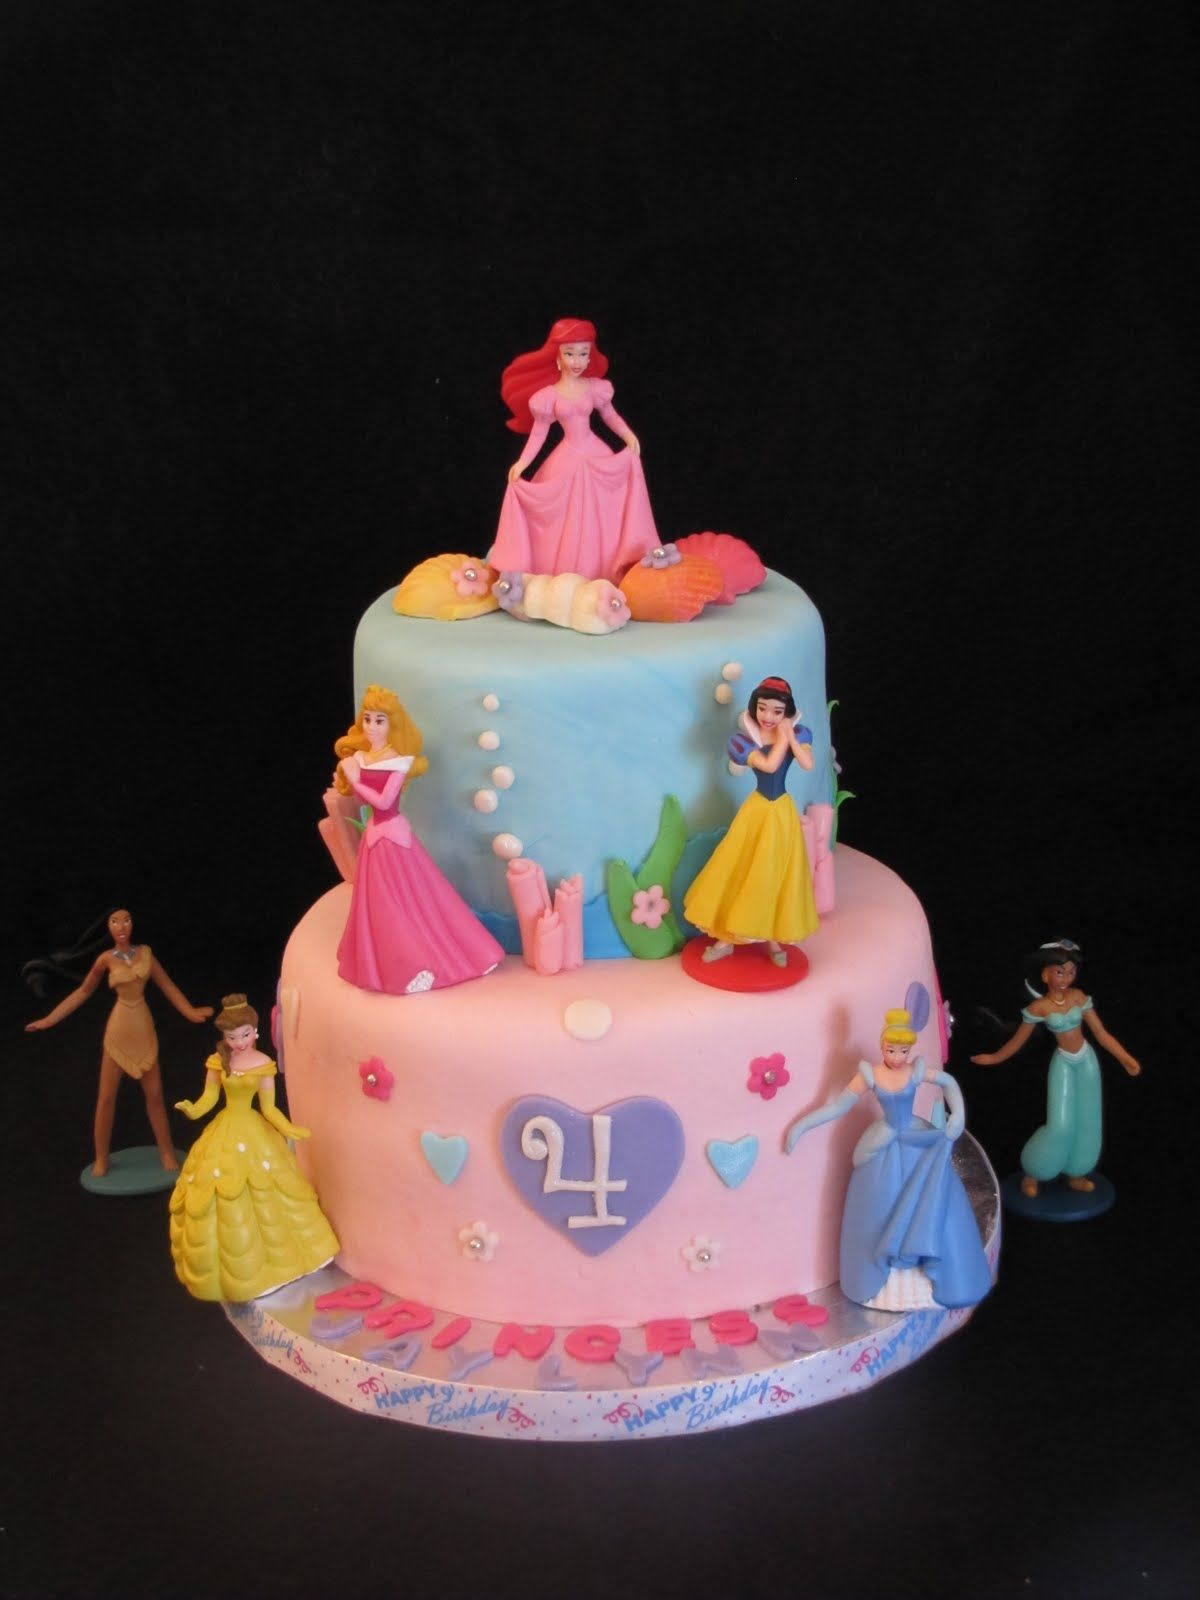 Disney Princess Cakecan We Do This At Ashley Phipps I Can Learn